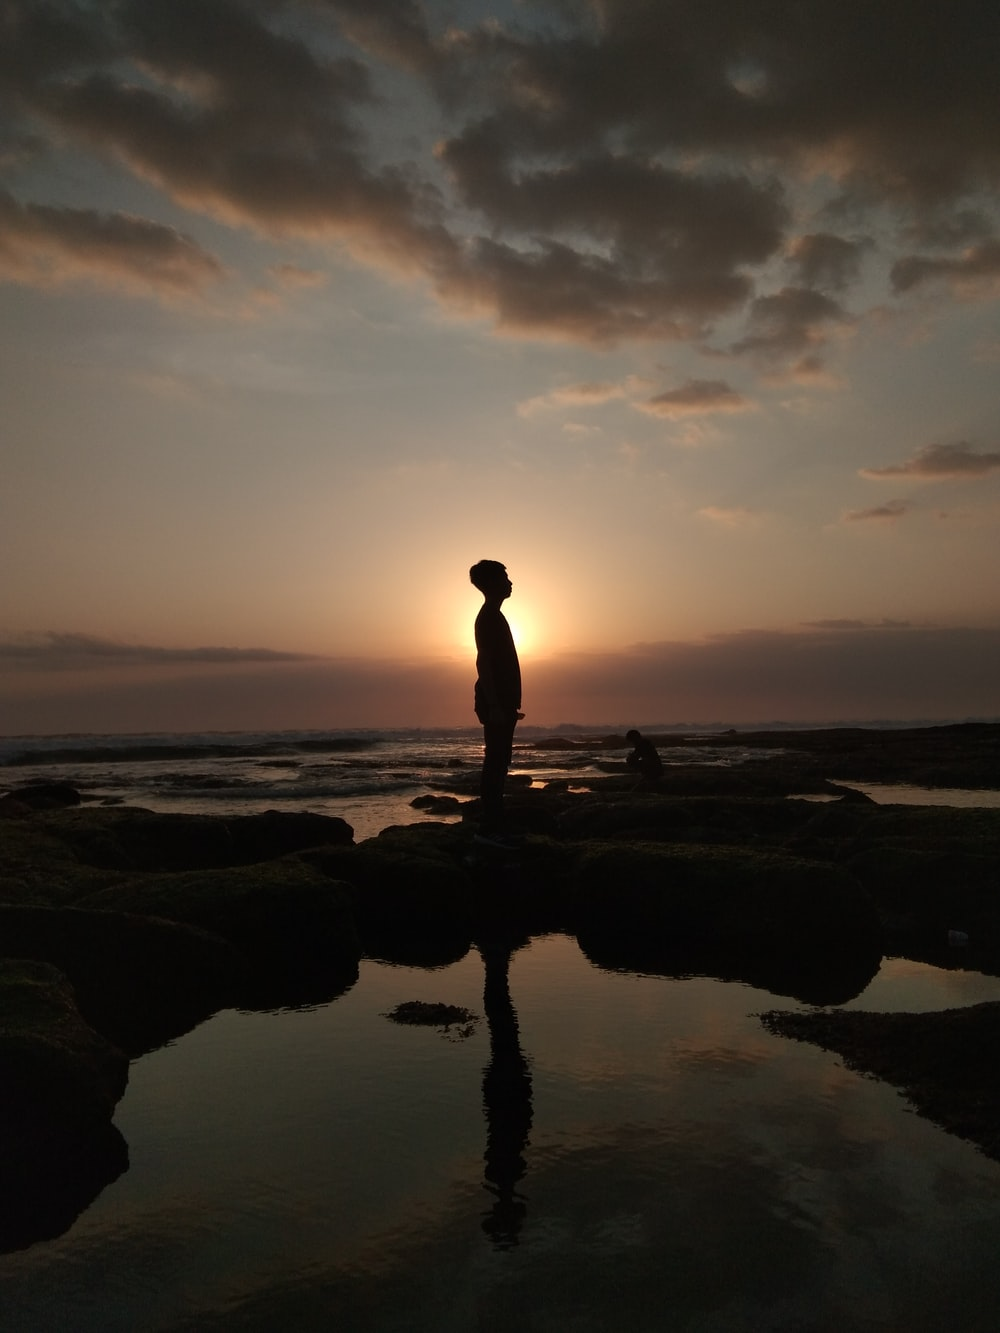 silhouette of person standing while facing left side